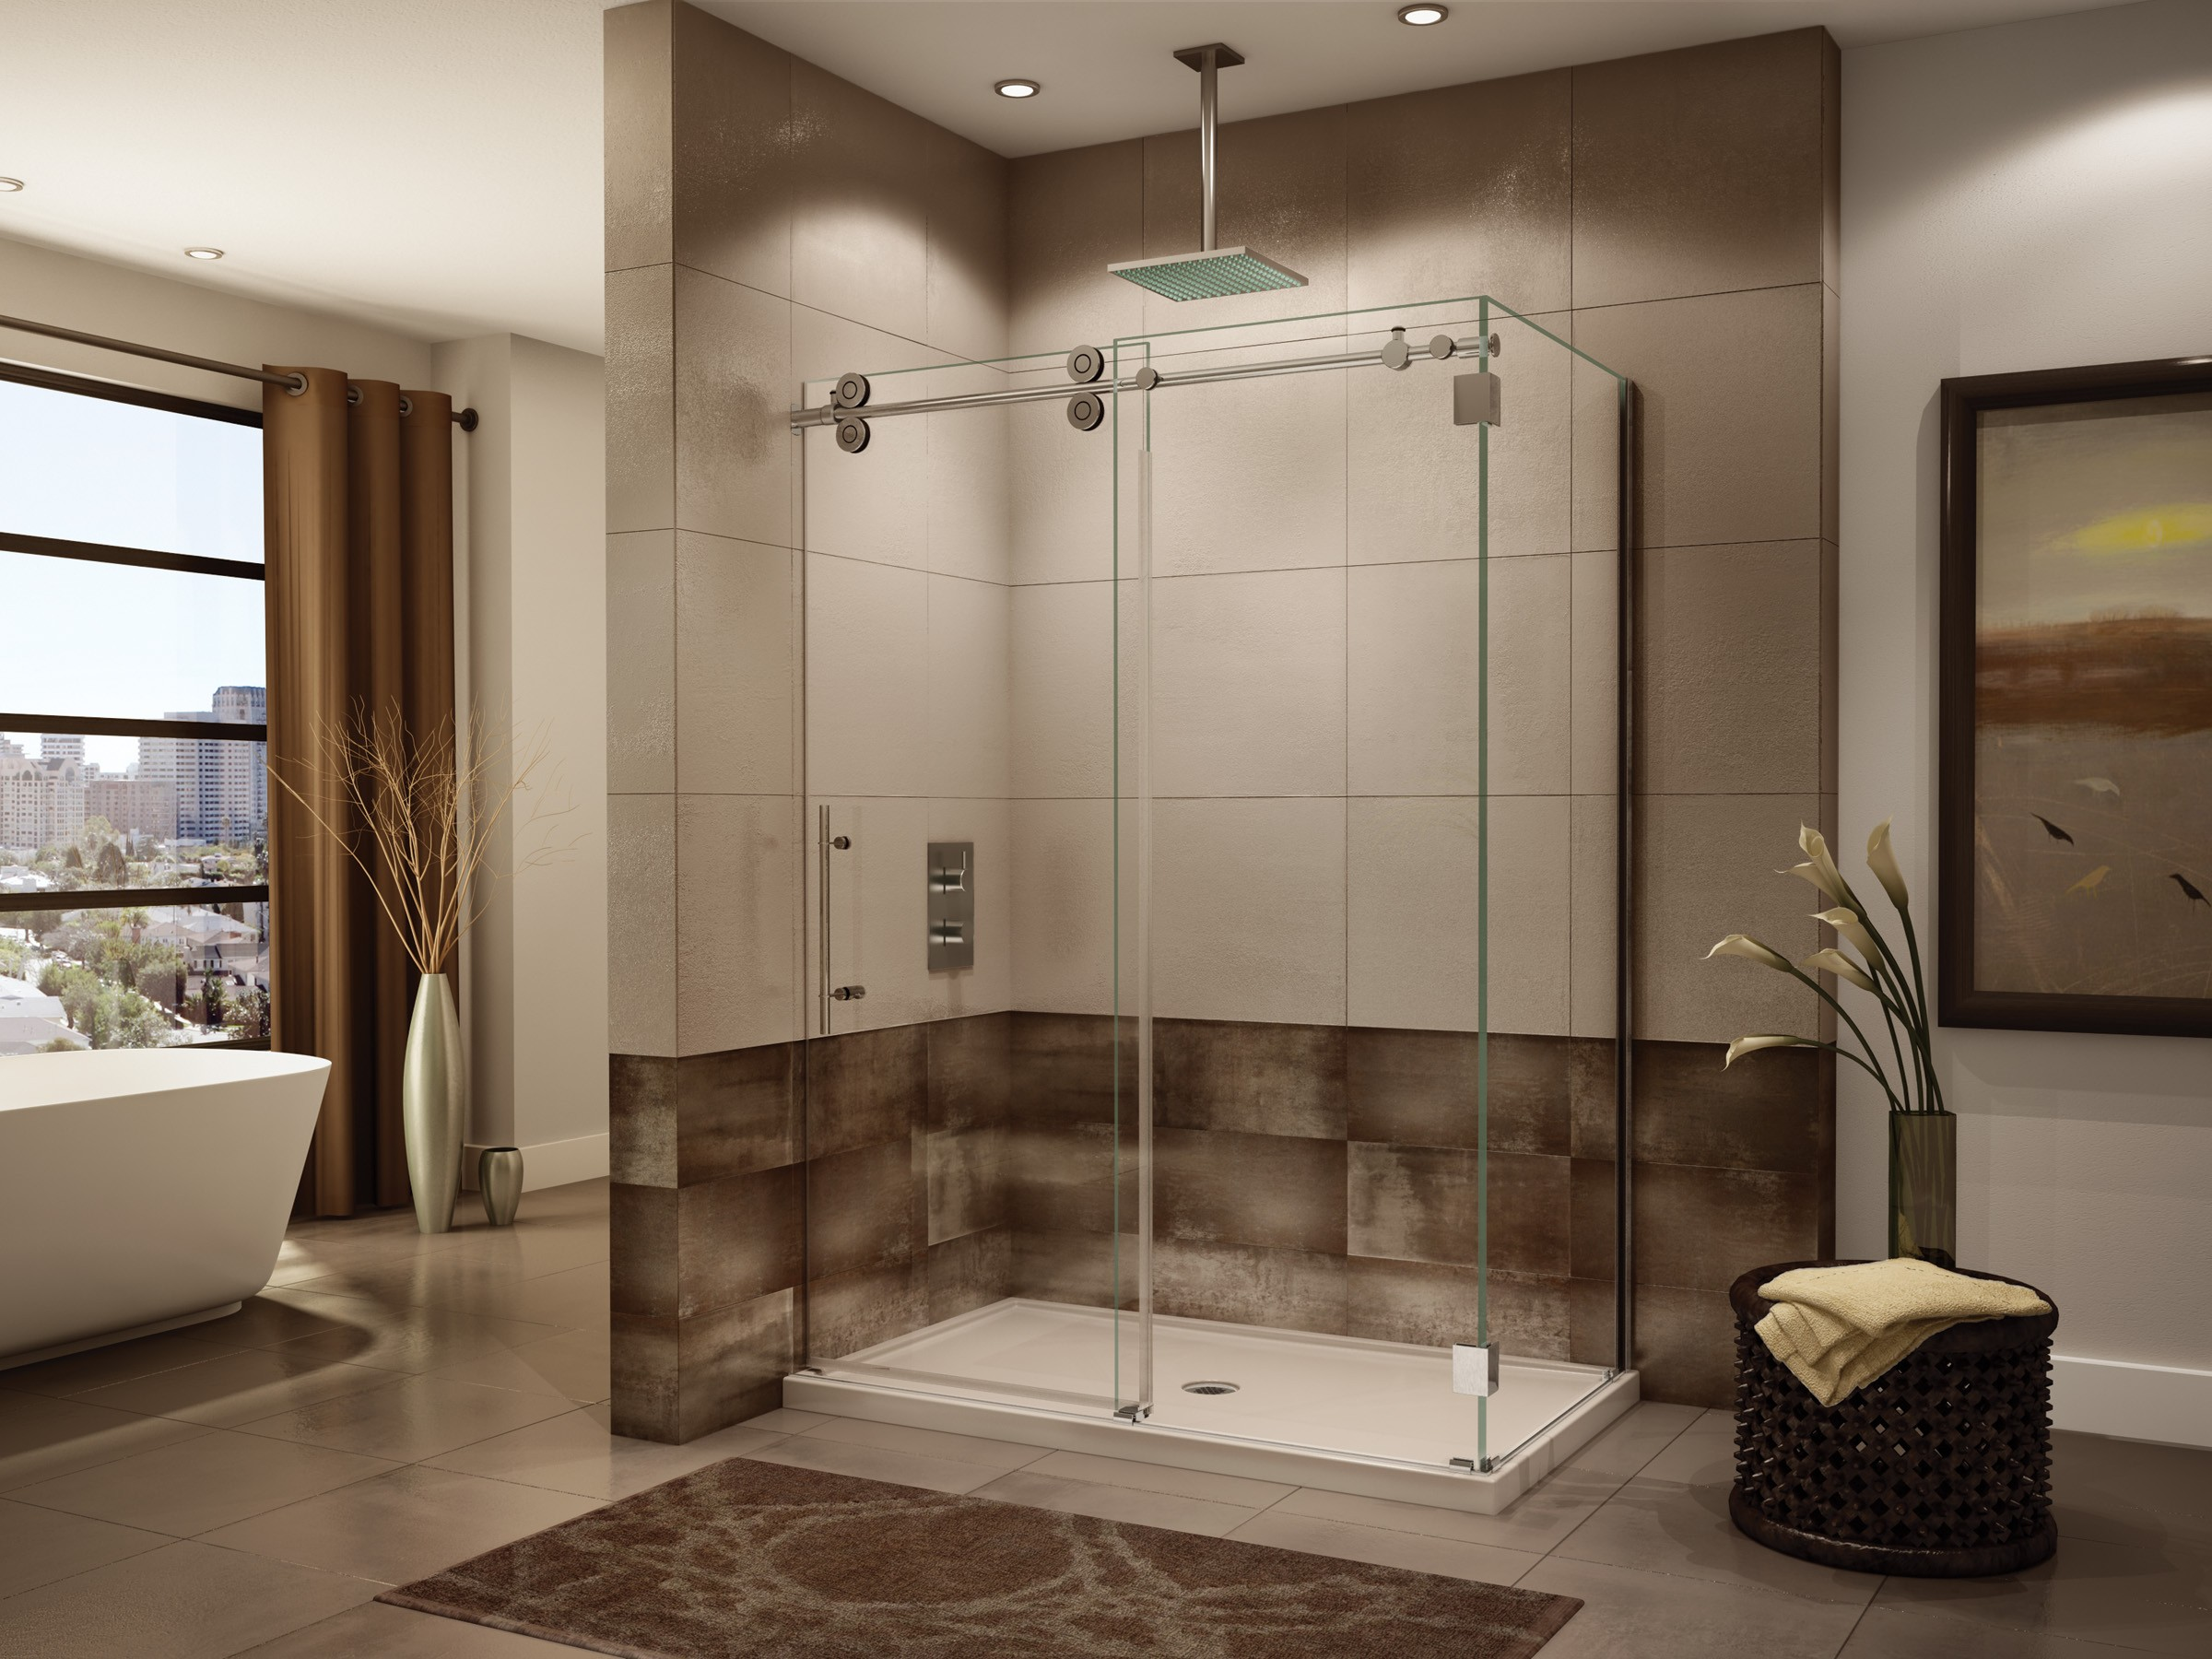 Bathroom Interior Shower Door Ideas Decorative Glass Shower